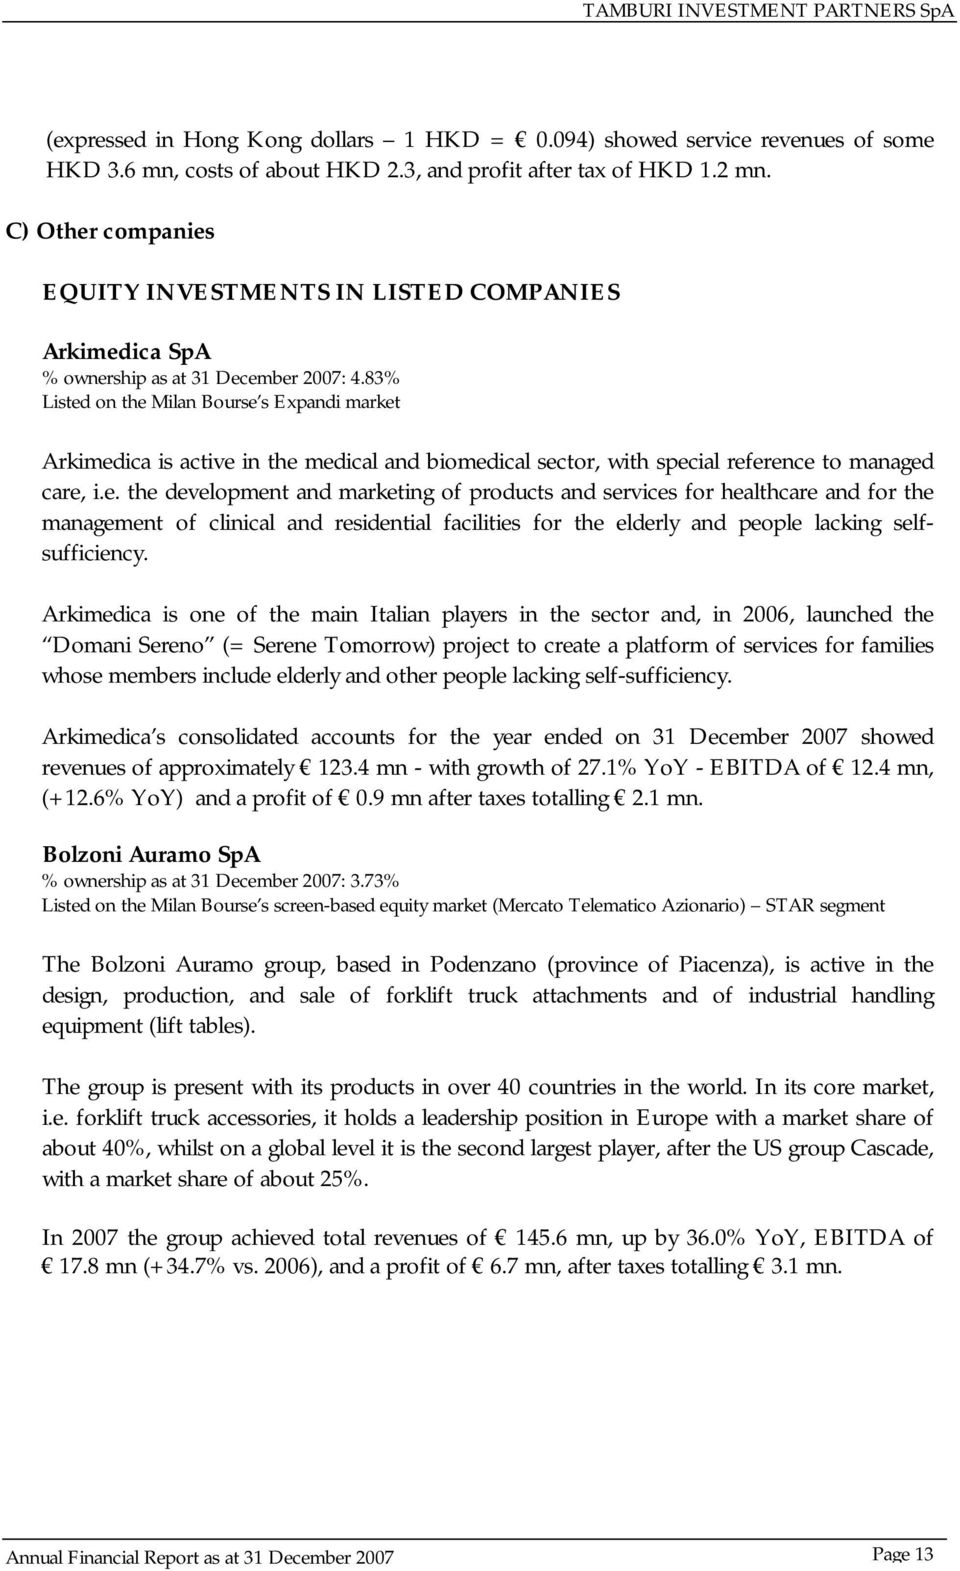 83% Listed on the Milan Bourse s Expandi market Arkimedica is active in the medical and biomedical sector, with special reference to managed care, i.e. the development and marketing of products and services for healthcare and for the management of clinical and residential facilities for the elderly and people lacking selfsufficiency.